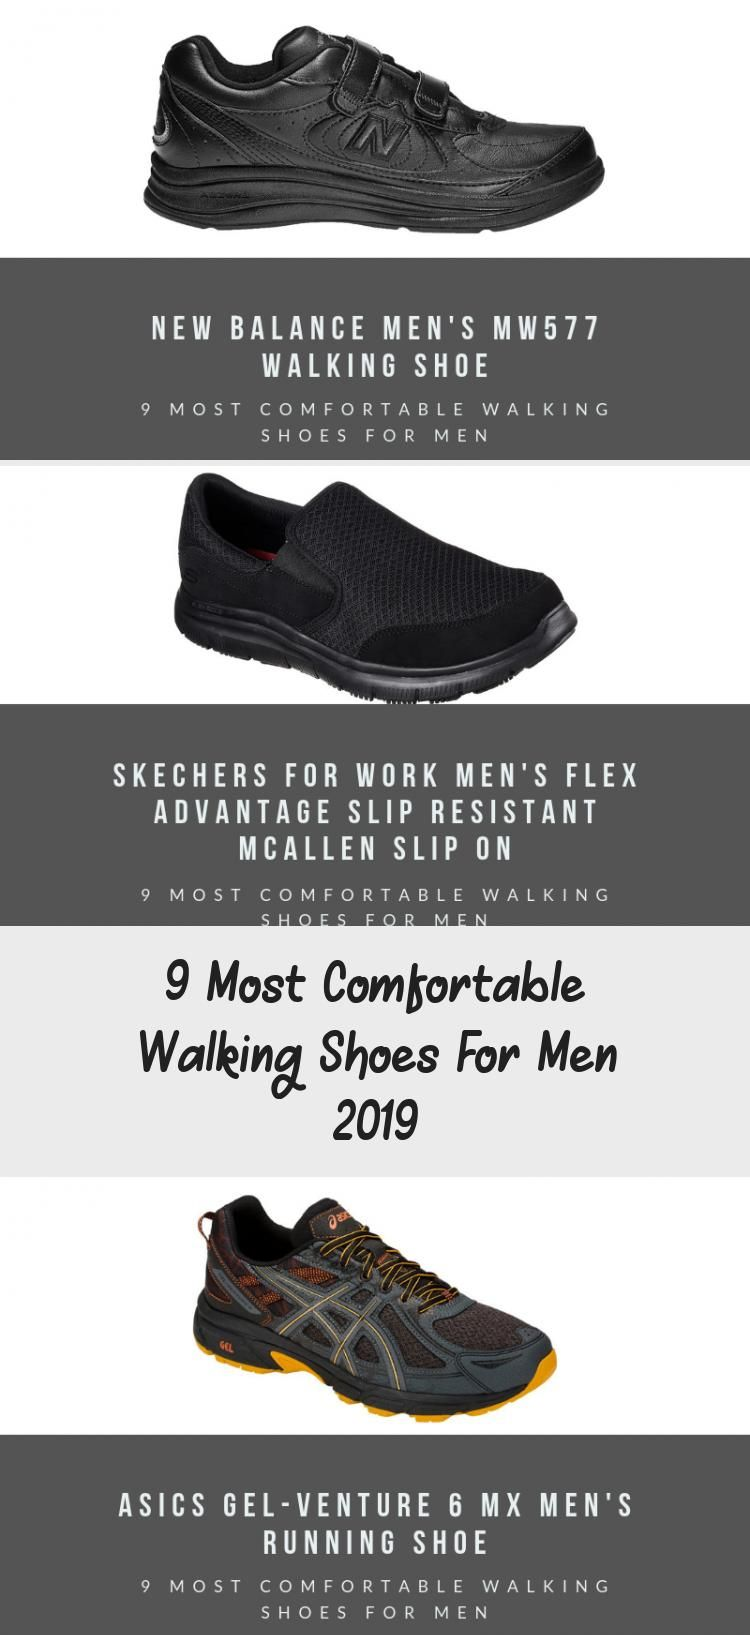 most comfortable men's running shoes 2019